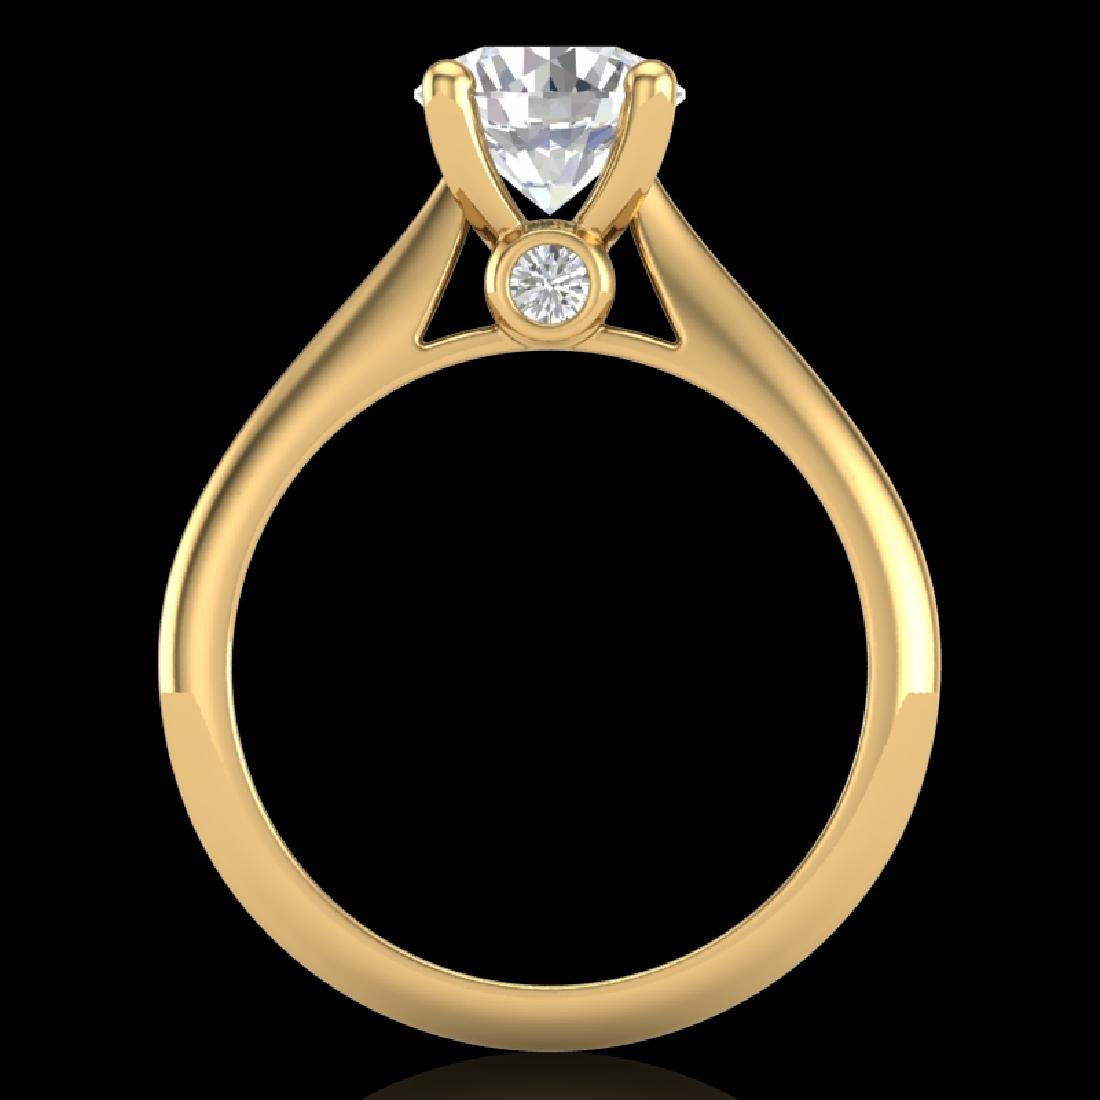 1.6 CTW VS/SI Diamond Art Deco Ring 18K Yellow Gold - 3